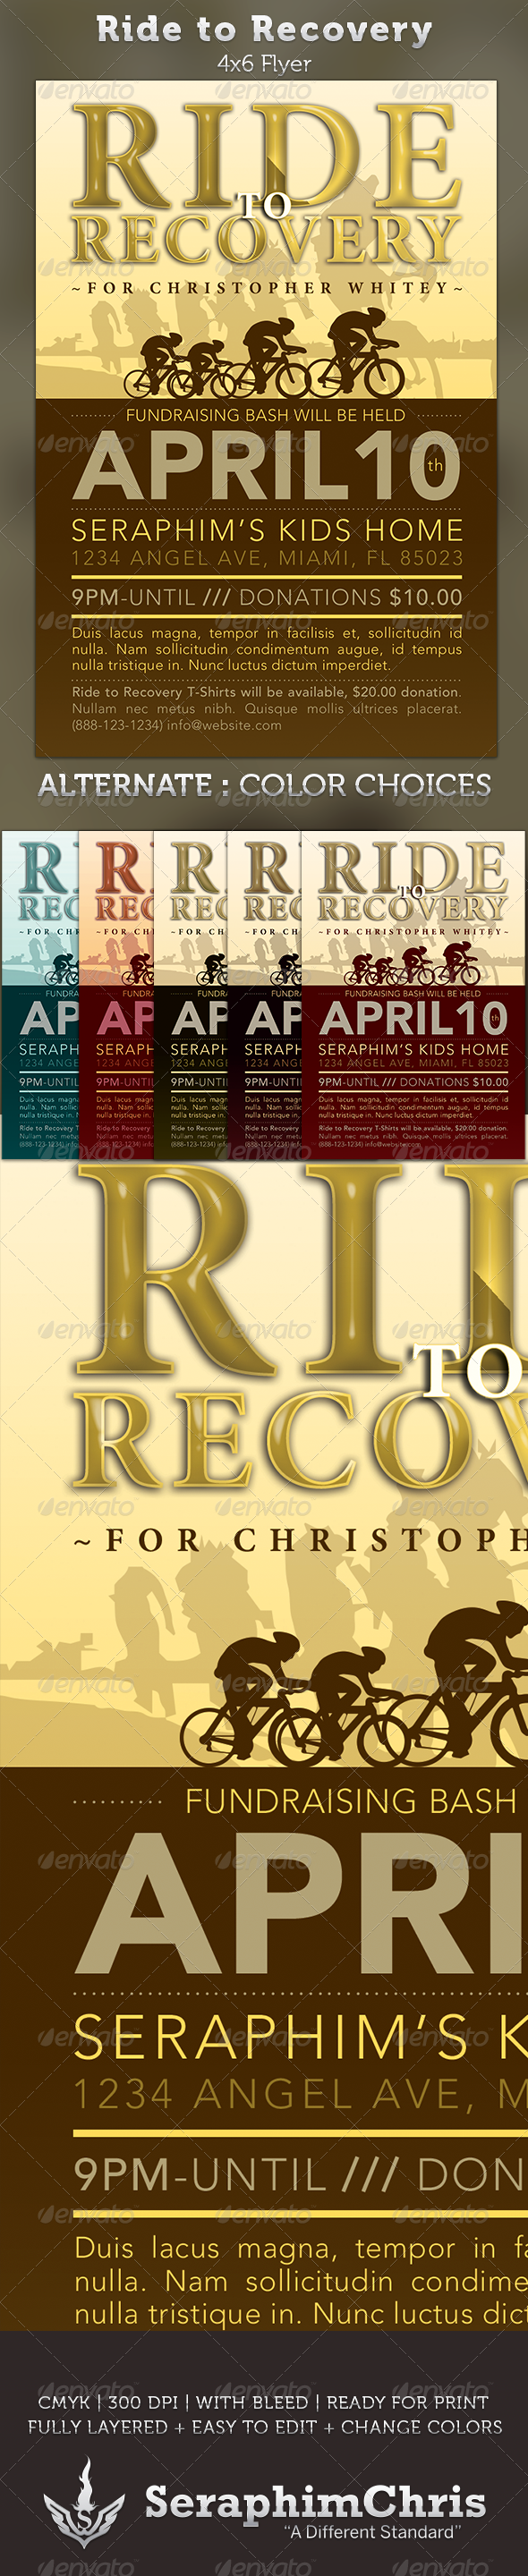 Ride to Recovery: Fundraiser Flyer Template - $6.00